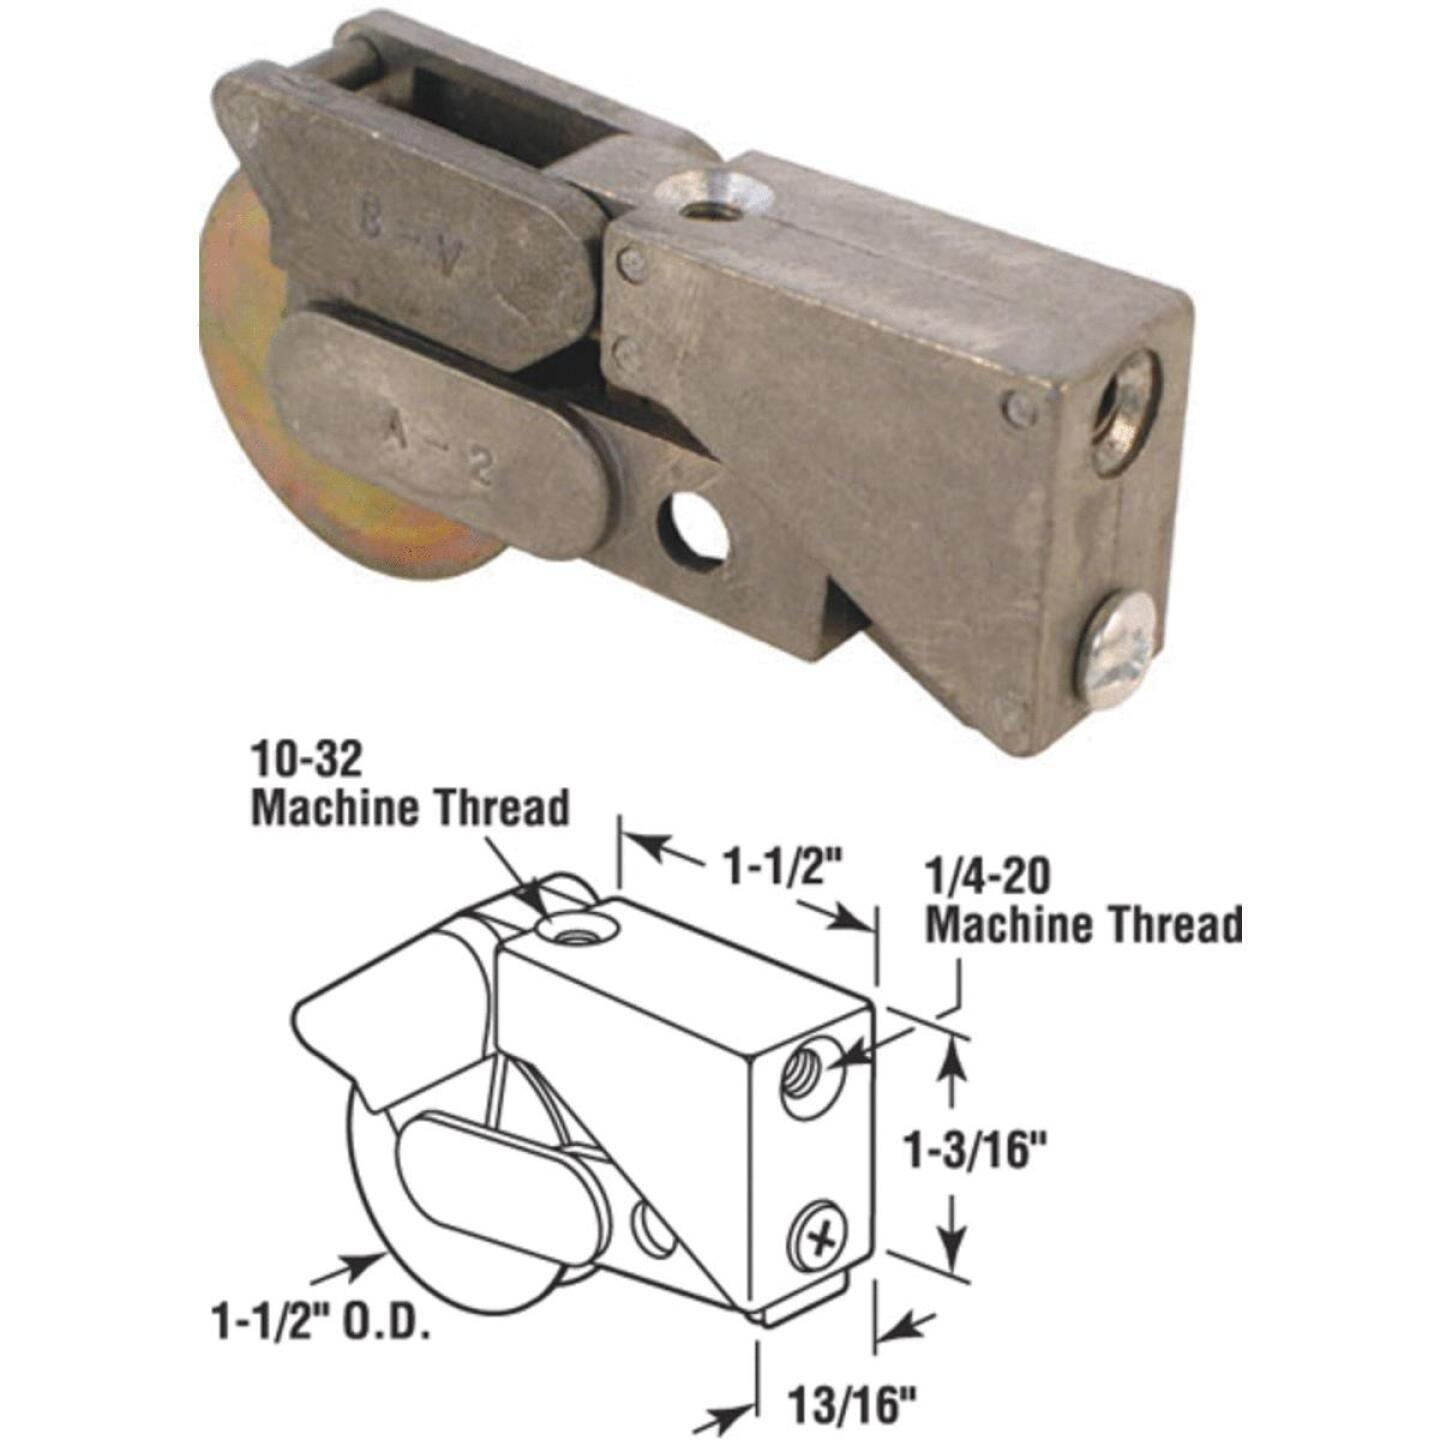 Slide-Co 1-1/2 In. Dia. x 3/4 In. W. x 1-1/2 In. L. Steel Patio Door Roller with Unique Diecast Housing Assembly Image 1